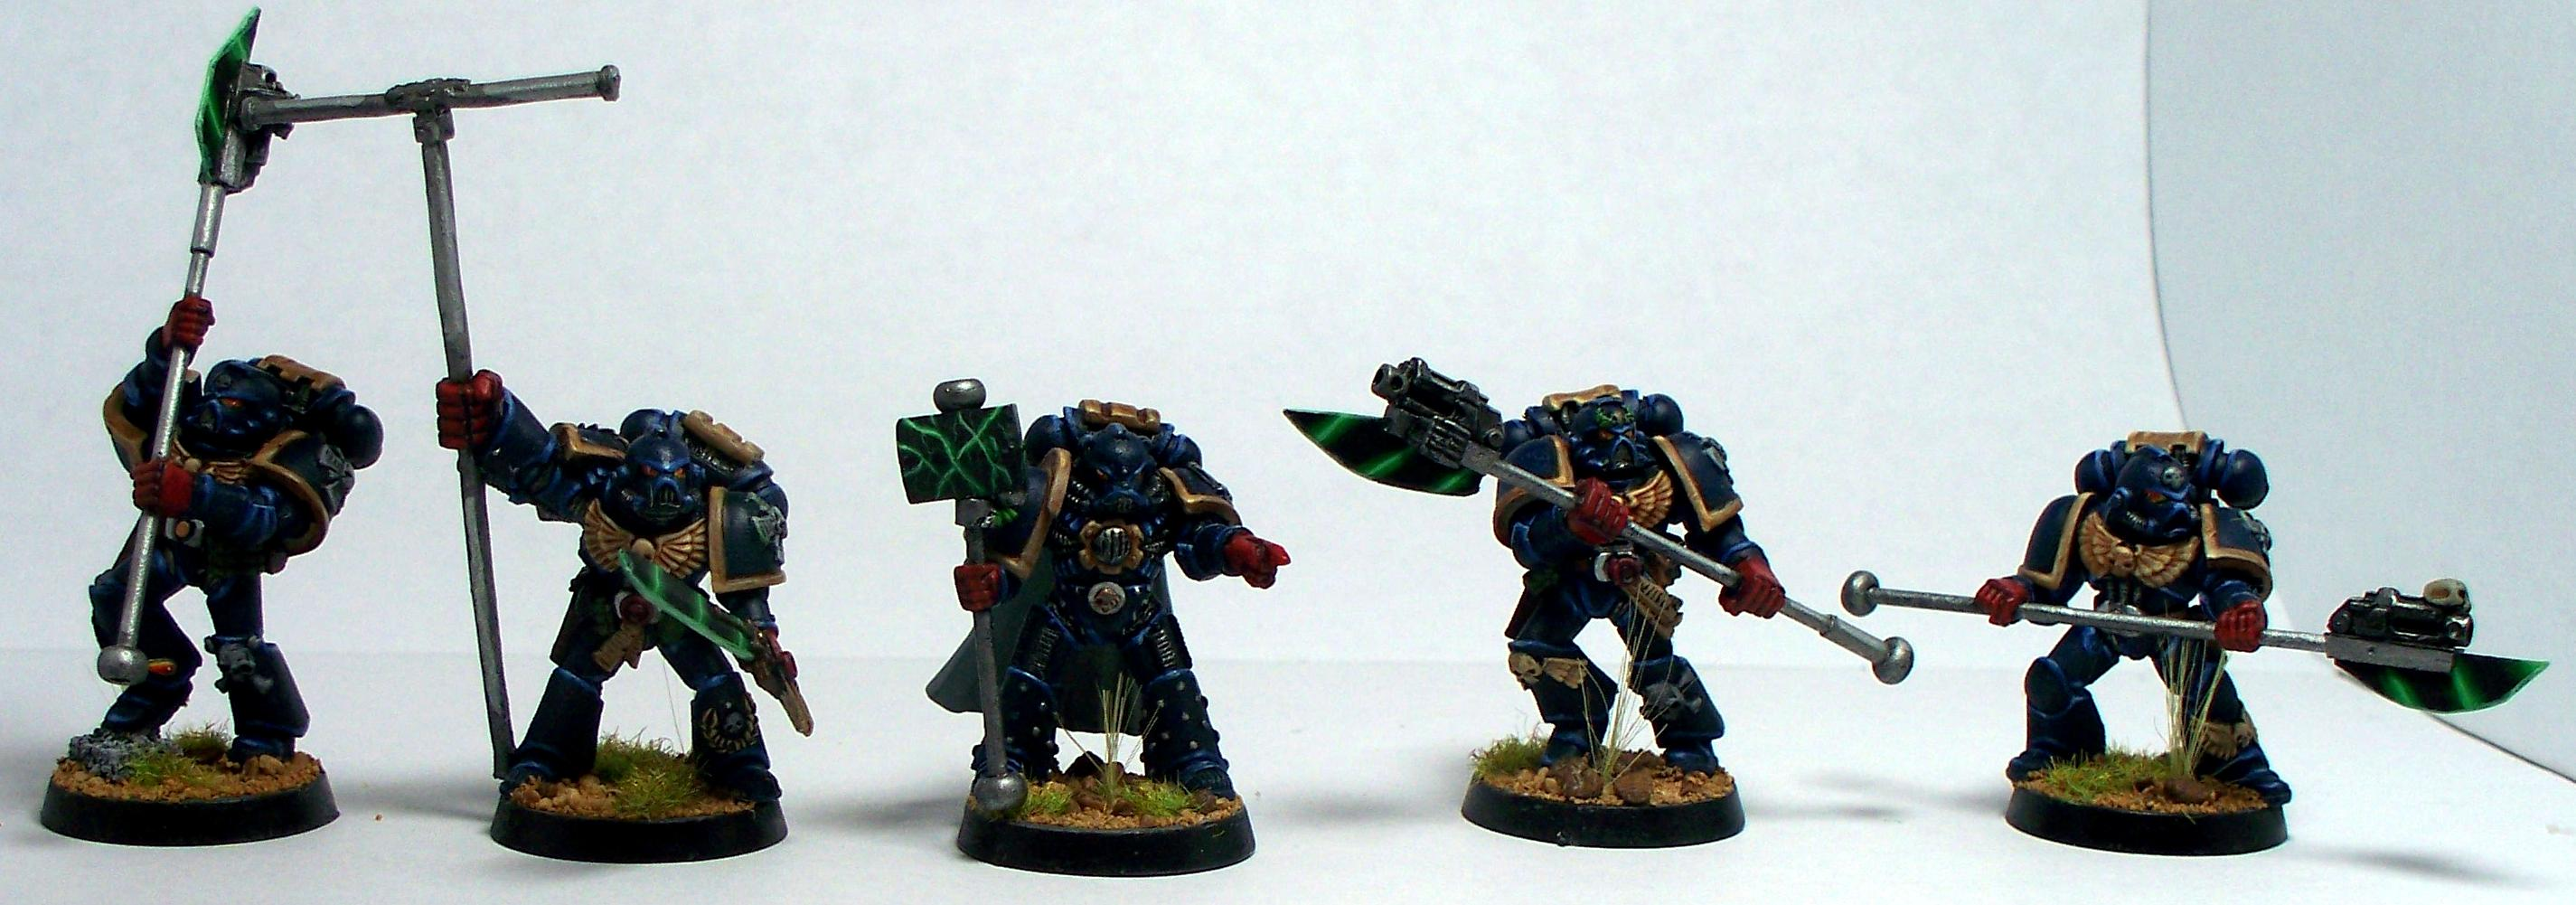 Chapter Champion, Crimson Fists, Honor Guard, Imperium, Space Marines, Standard Bearer, Warhammer 40,000